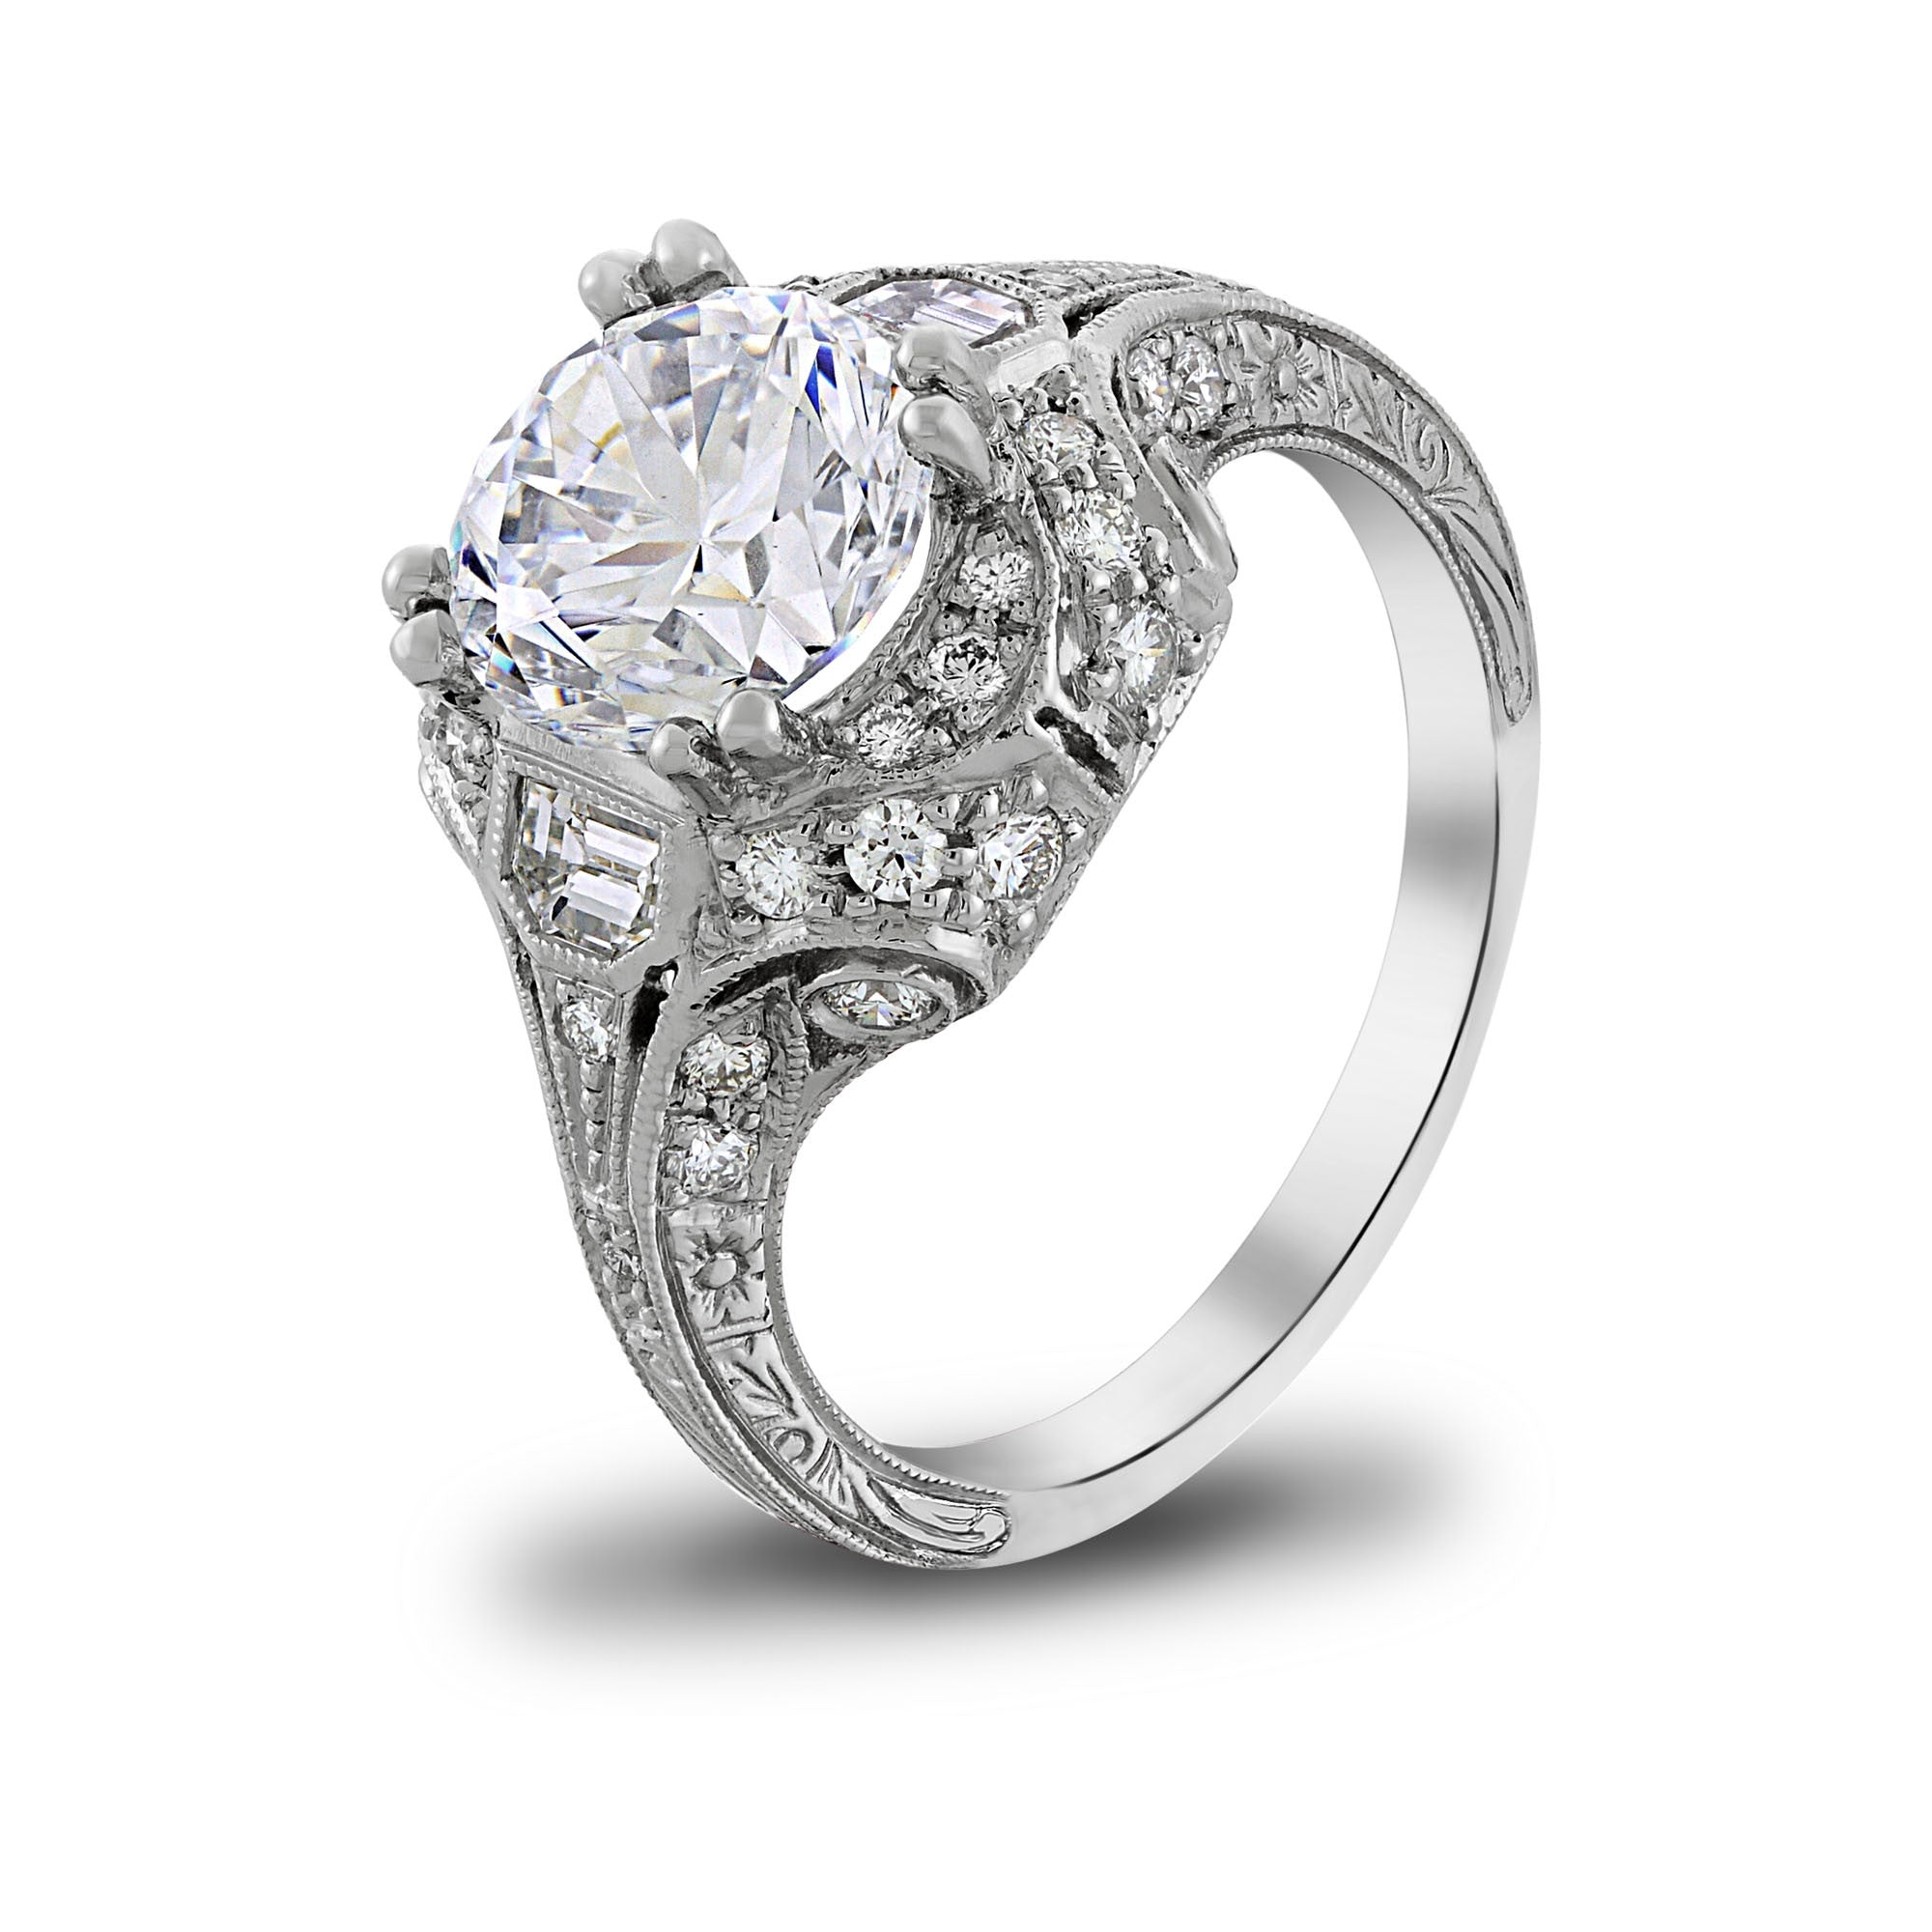 wedding design engagement beckers angle kay ring scott tool e your rings contemporary jewelers own